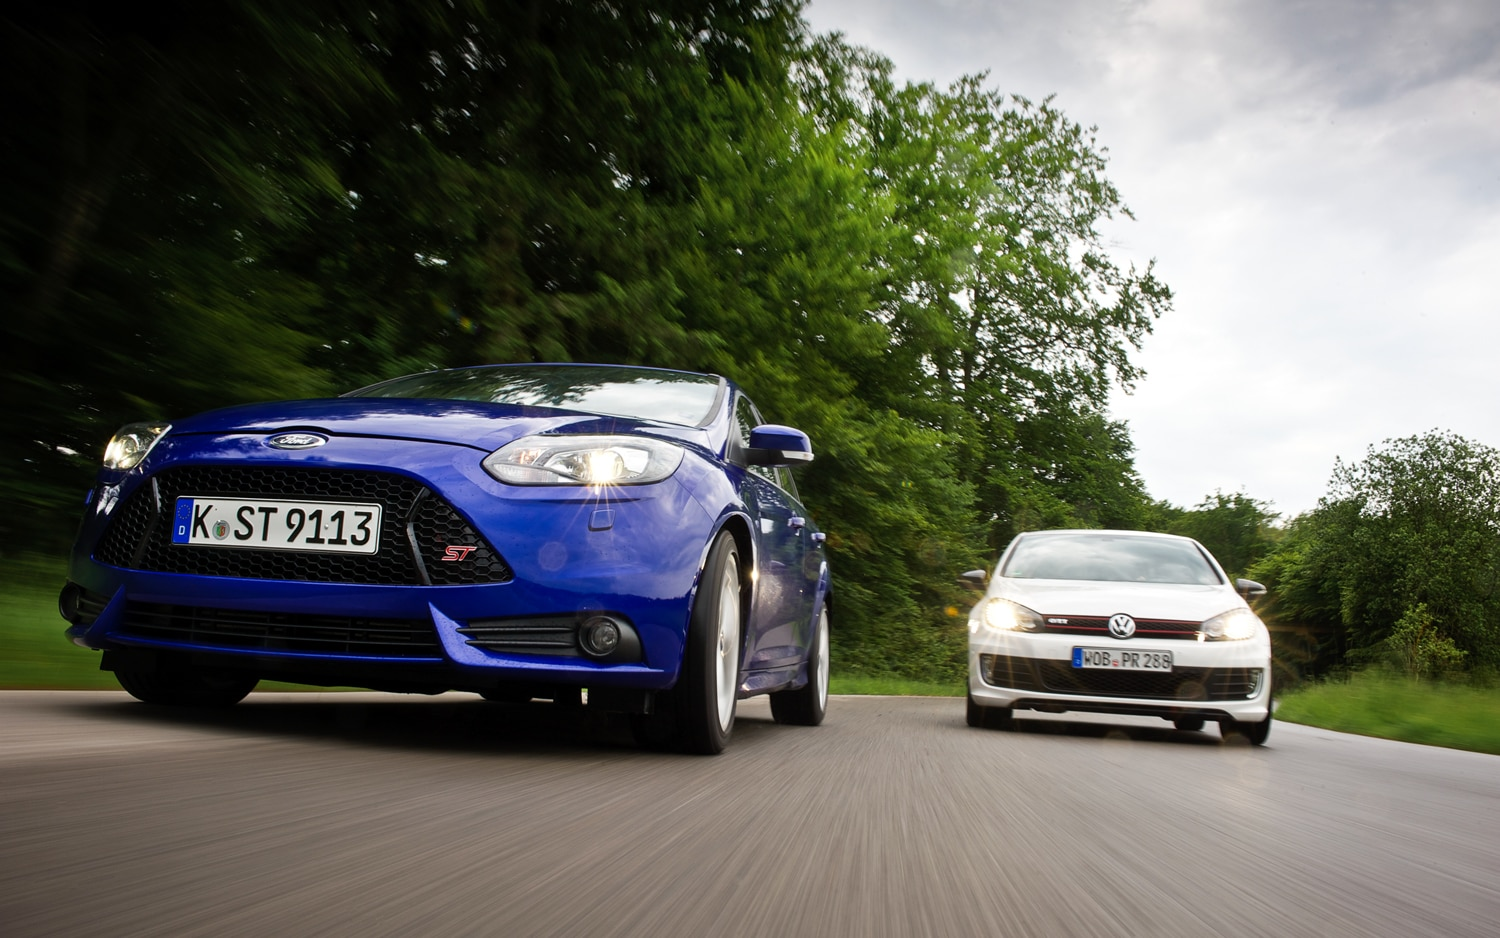 2013 Ford Focus ST Vs 2012 Volkswagen GTI Front View1